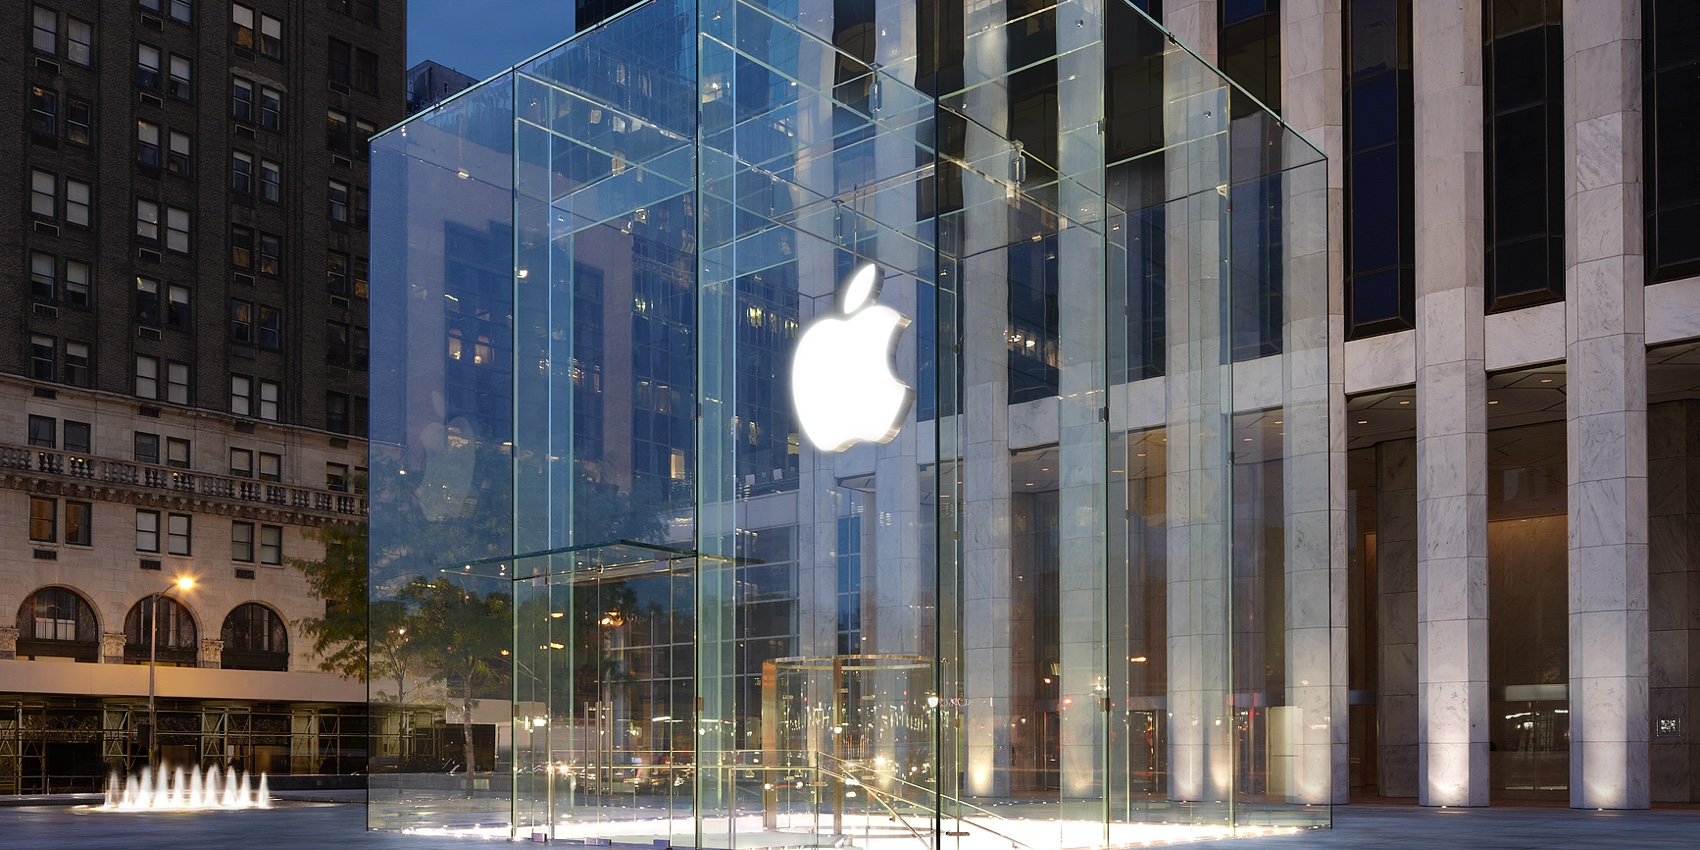 5th Ave Apple Store reportedly dealing with bed bugs, causing concern for customers and staff